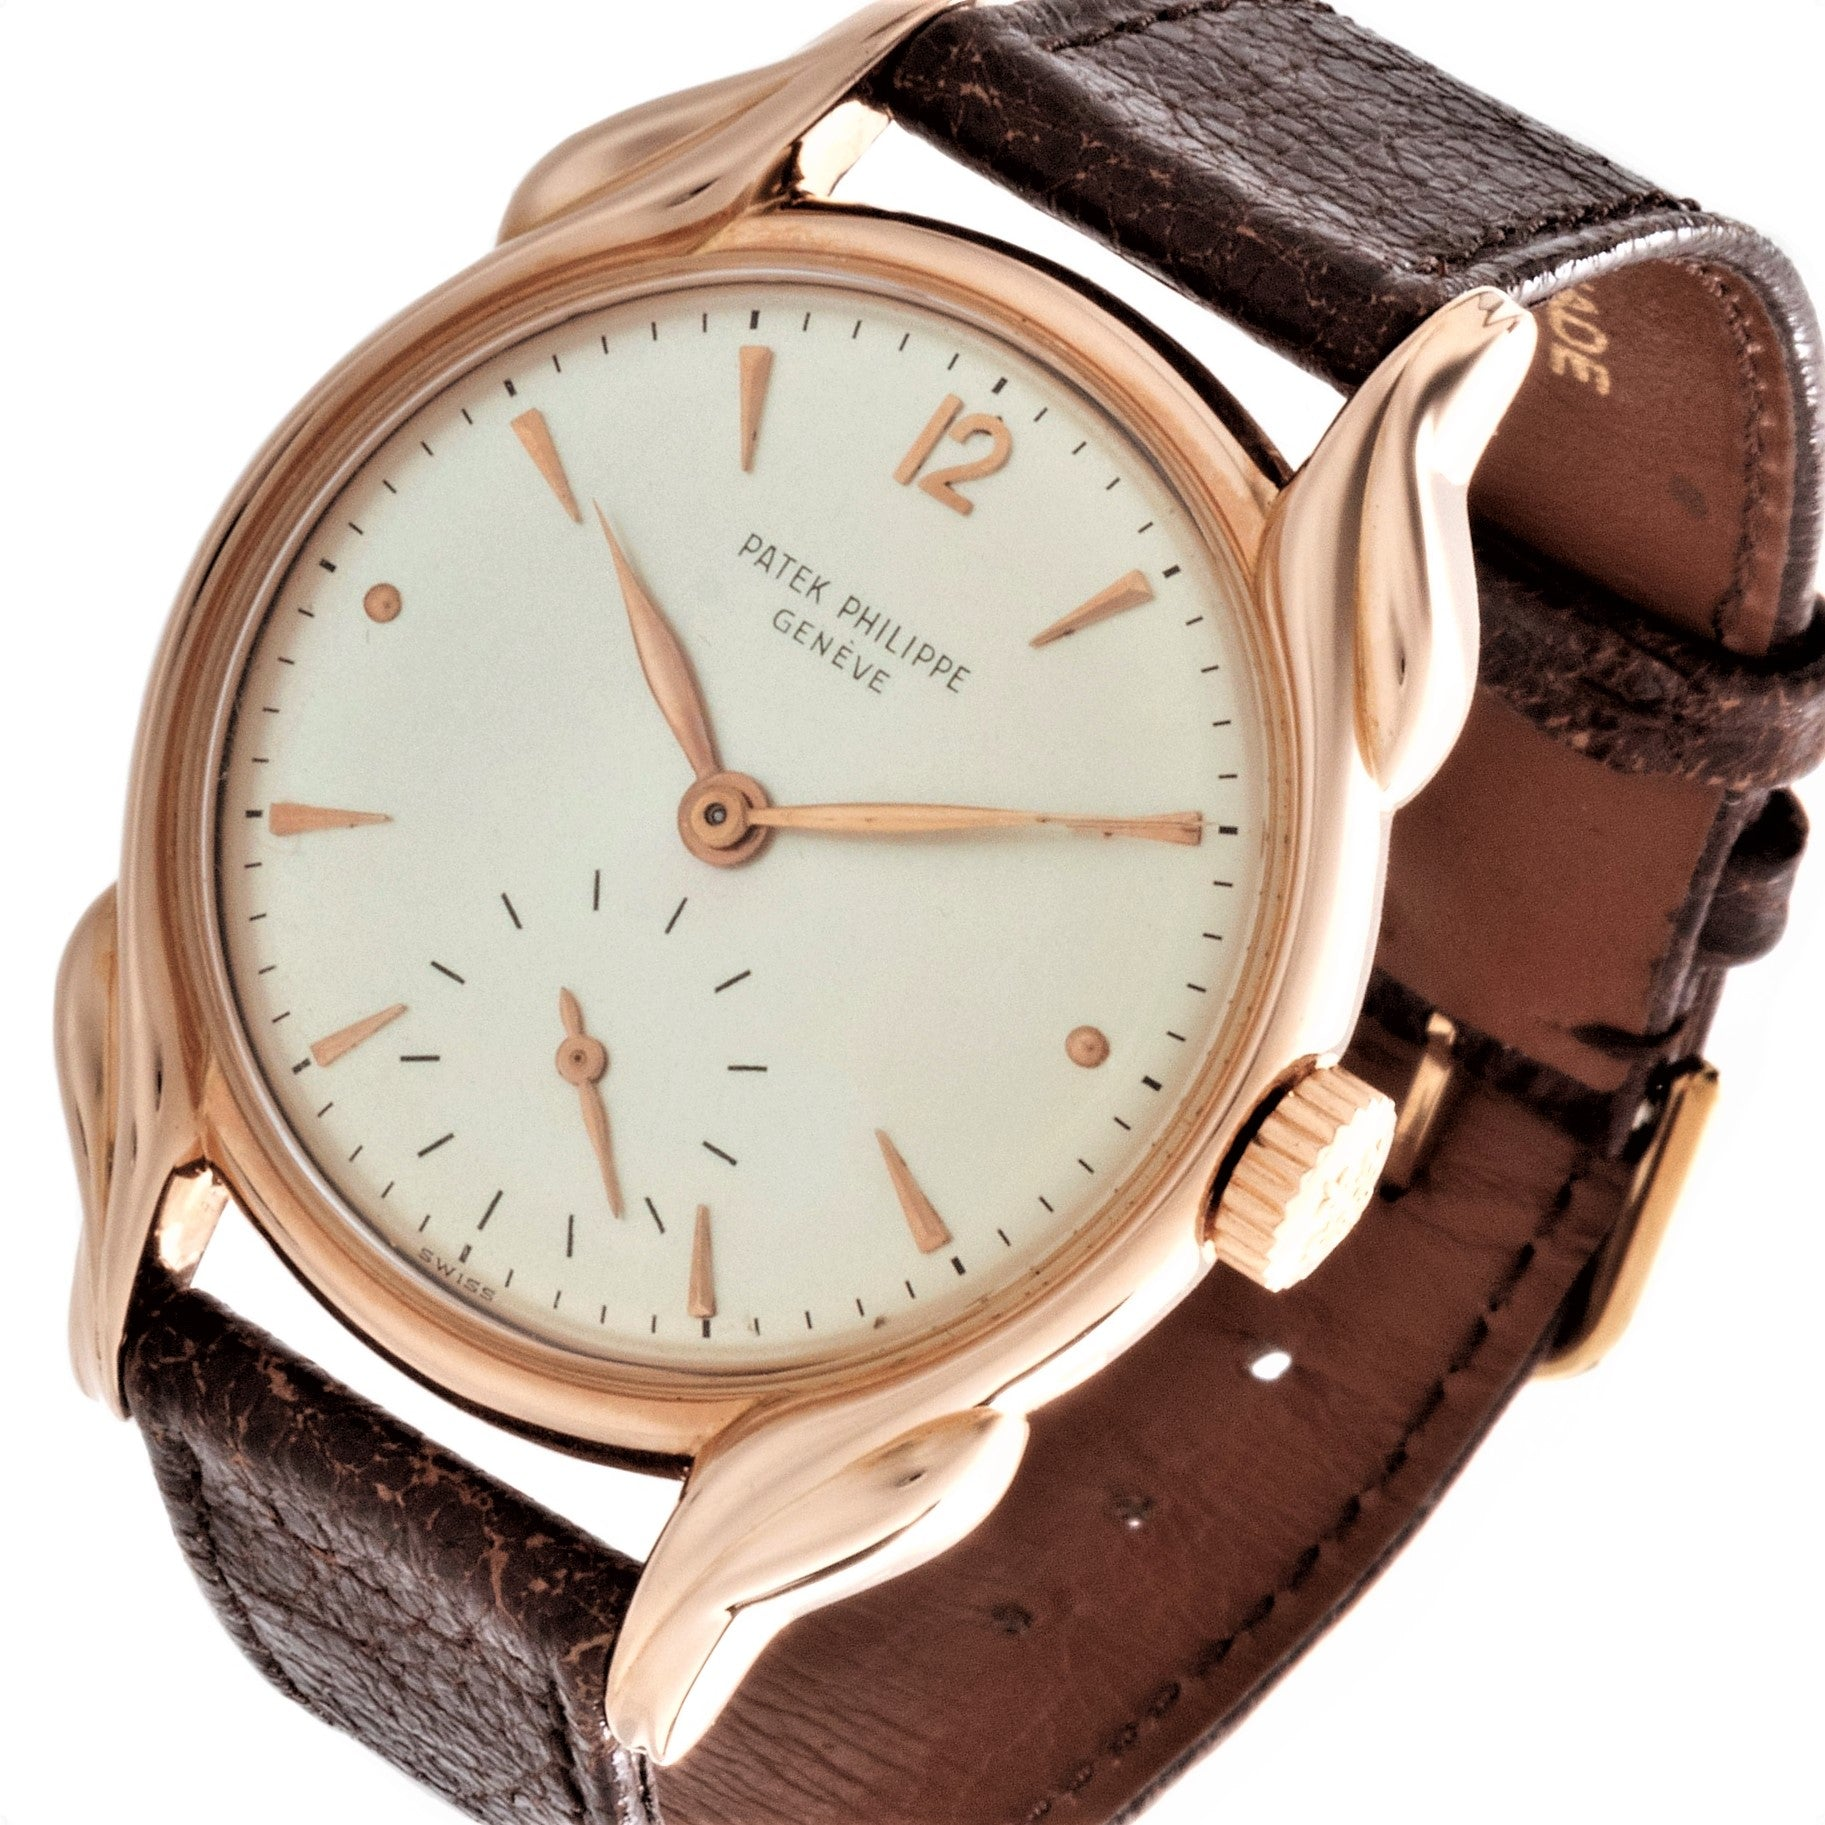 Patek Philippe 2431R Calatrava Watch